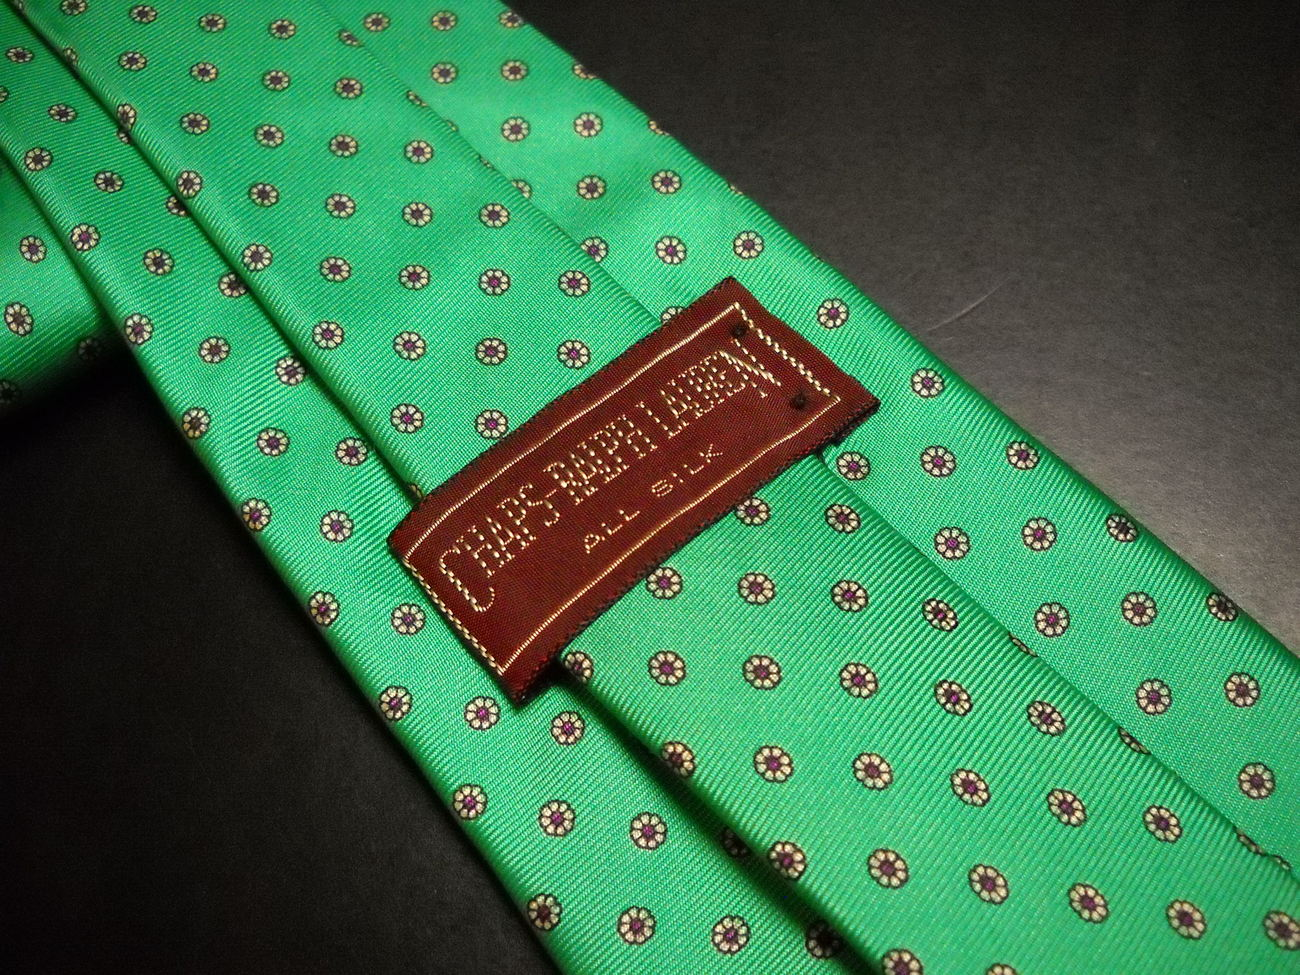 Chaps Ralph Lauren Neck Tie Bright Green with Repeating Small Blooms